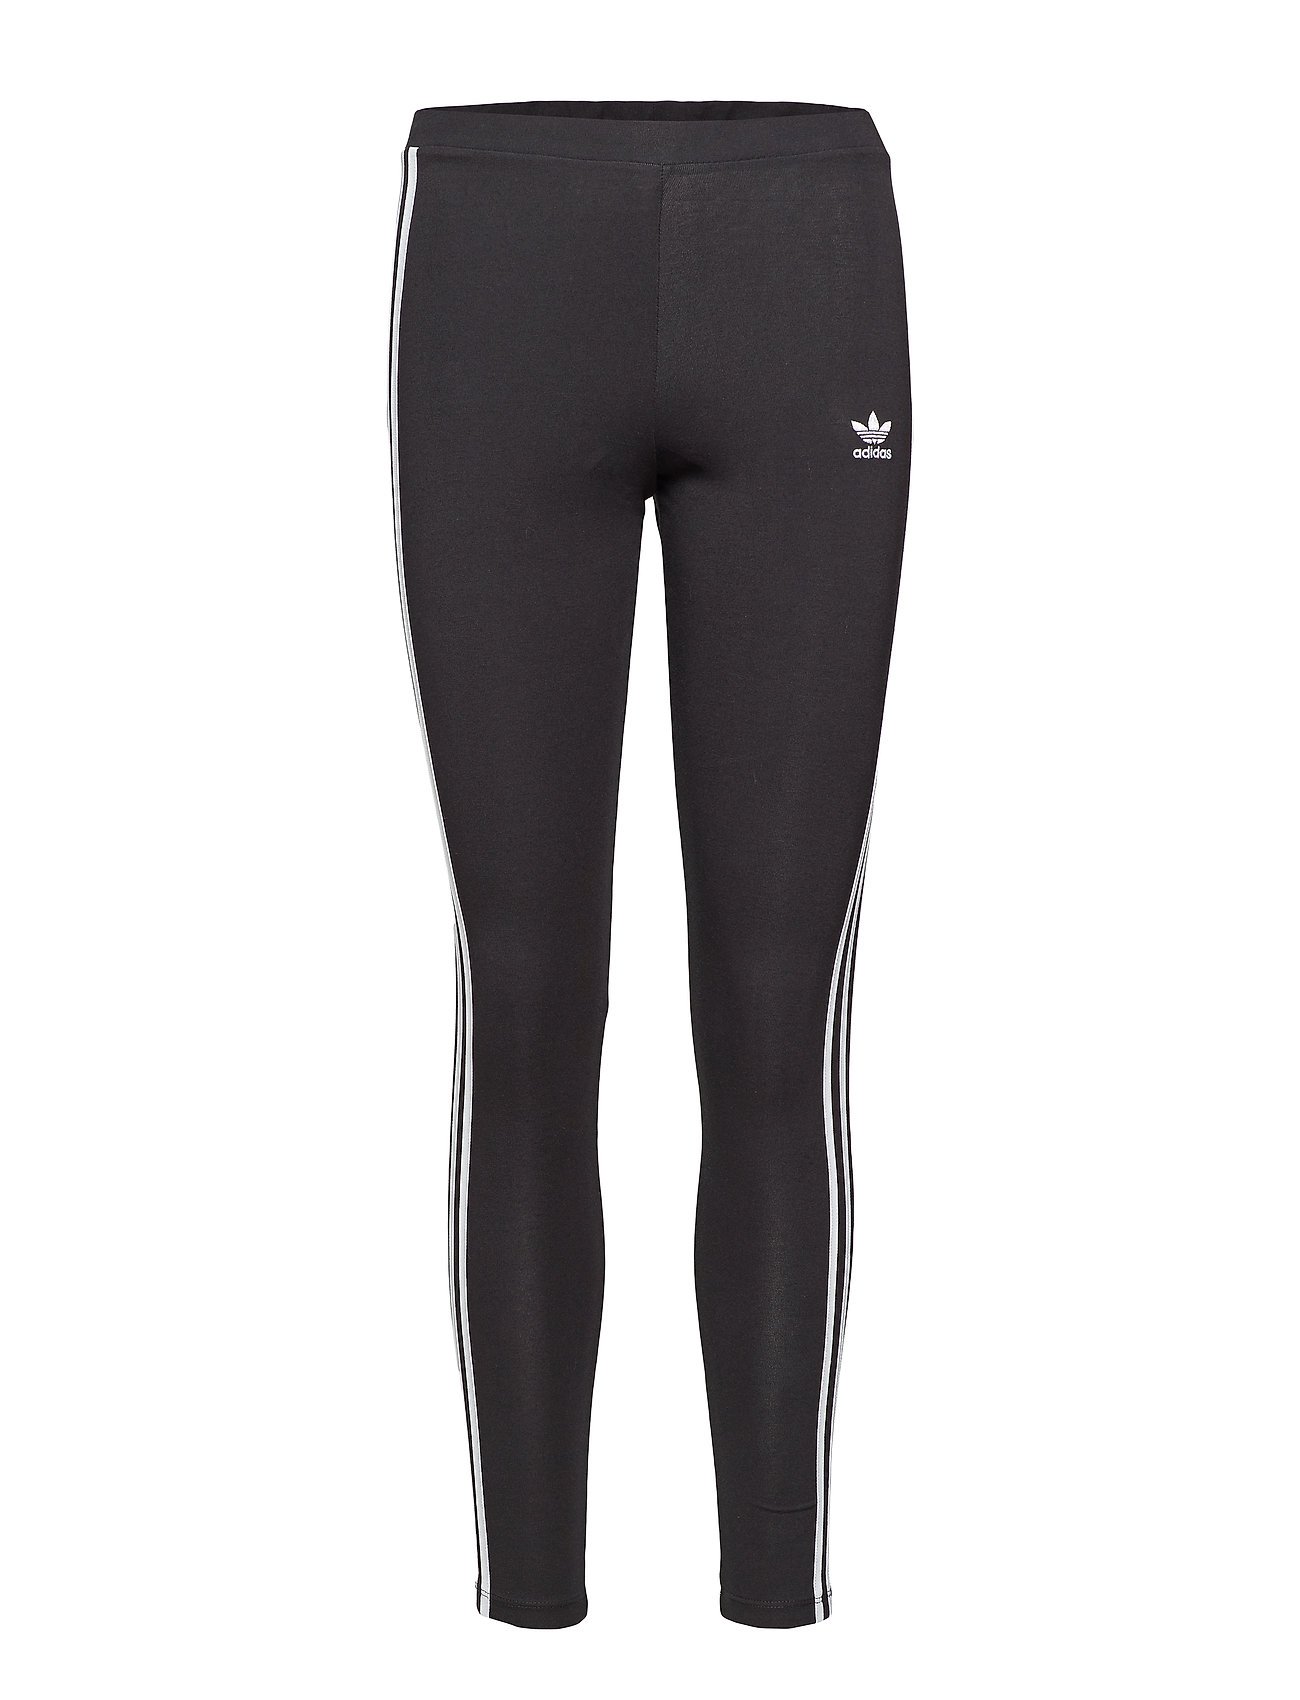 adidas Originals 3 STR TIGHT - BLACK